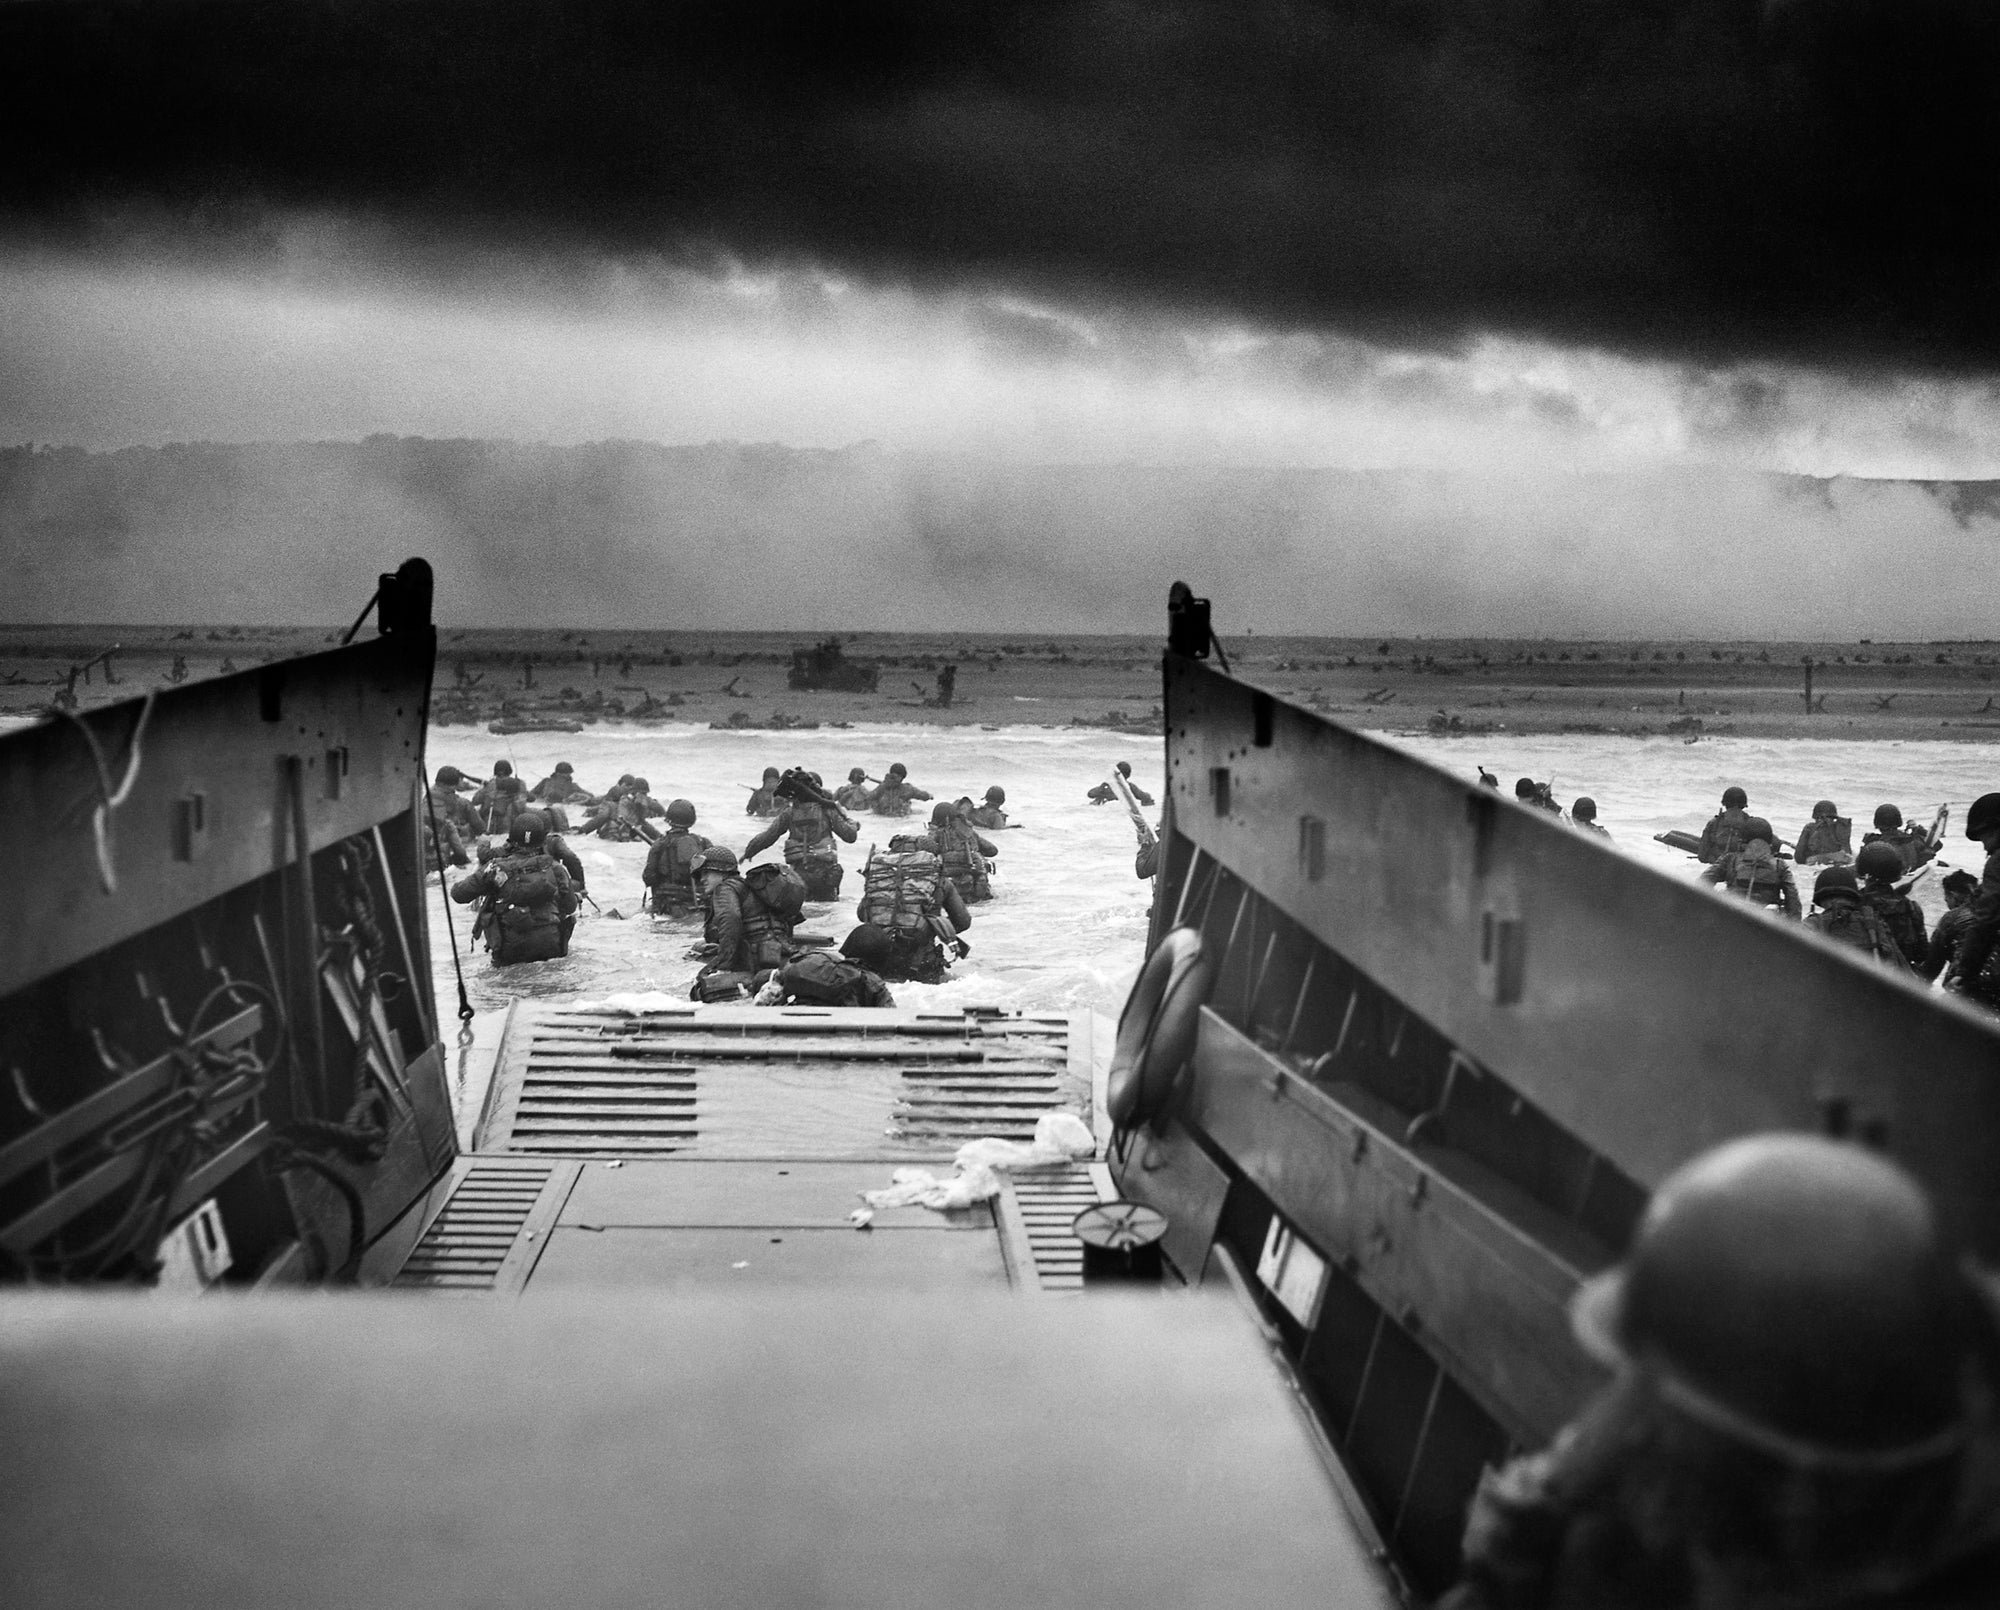 D-Day, Operation Overlord, and the Allied Invasion of Europe